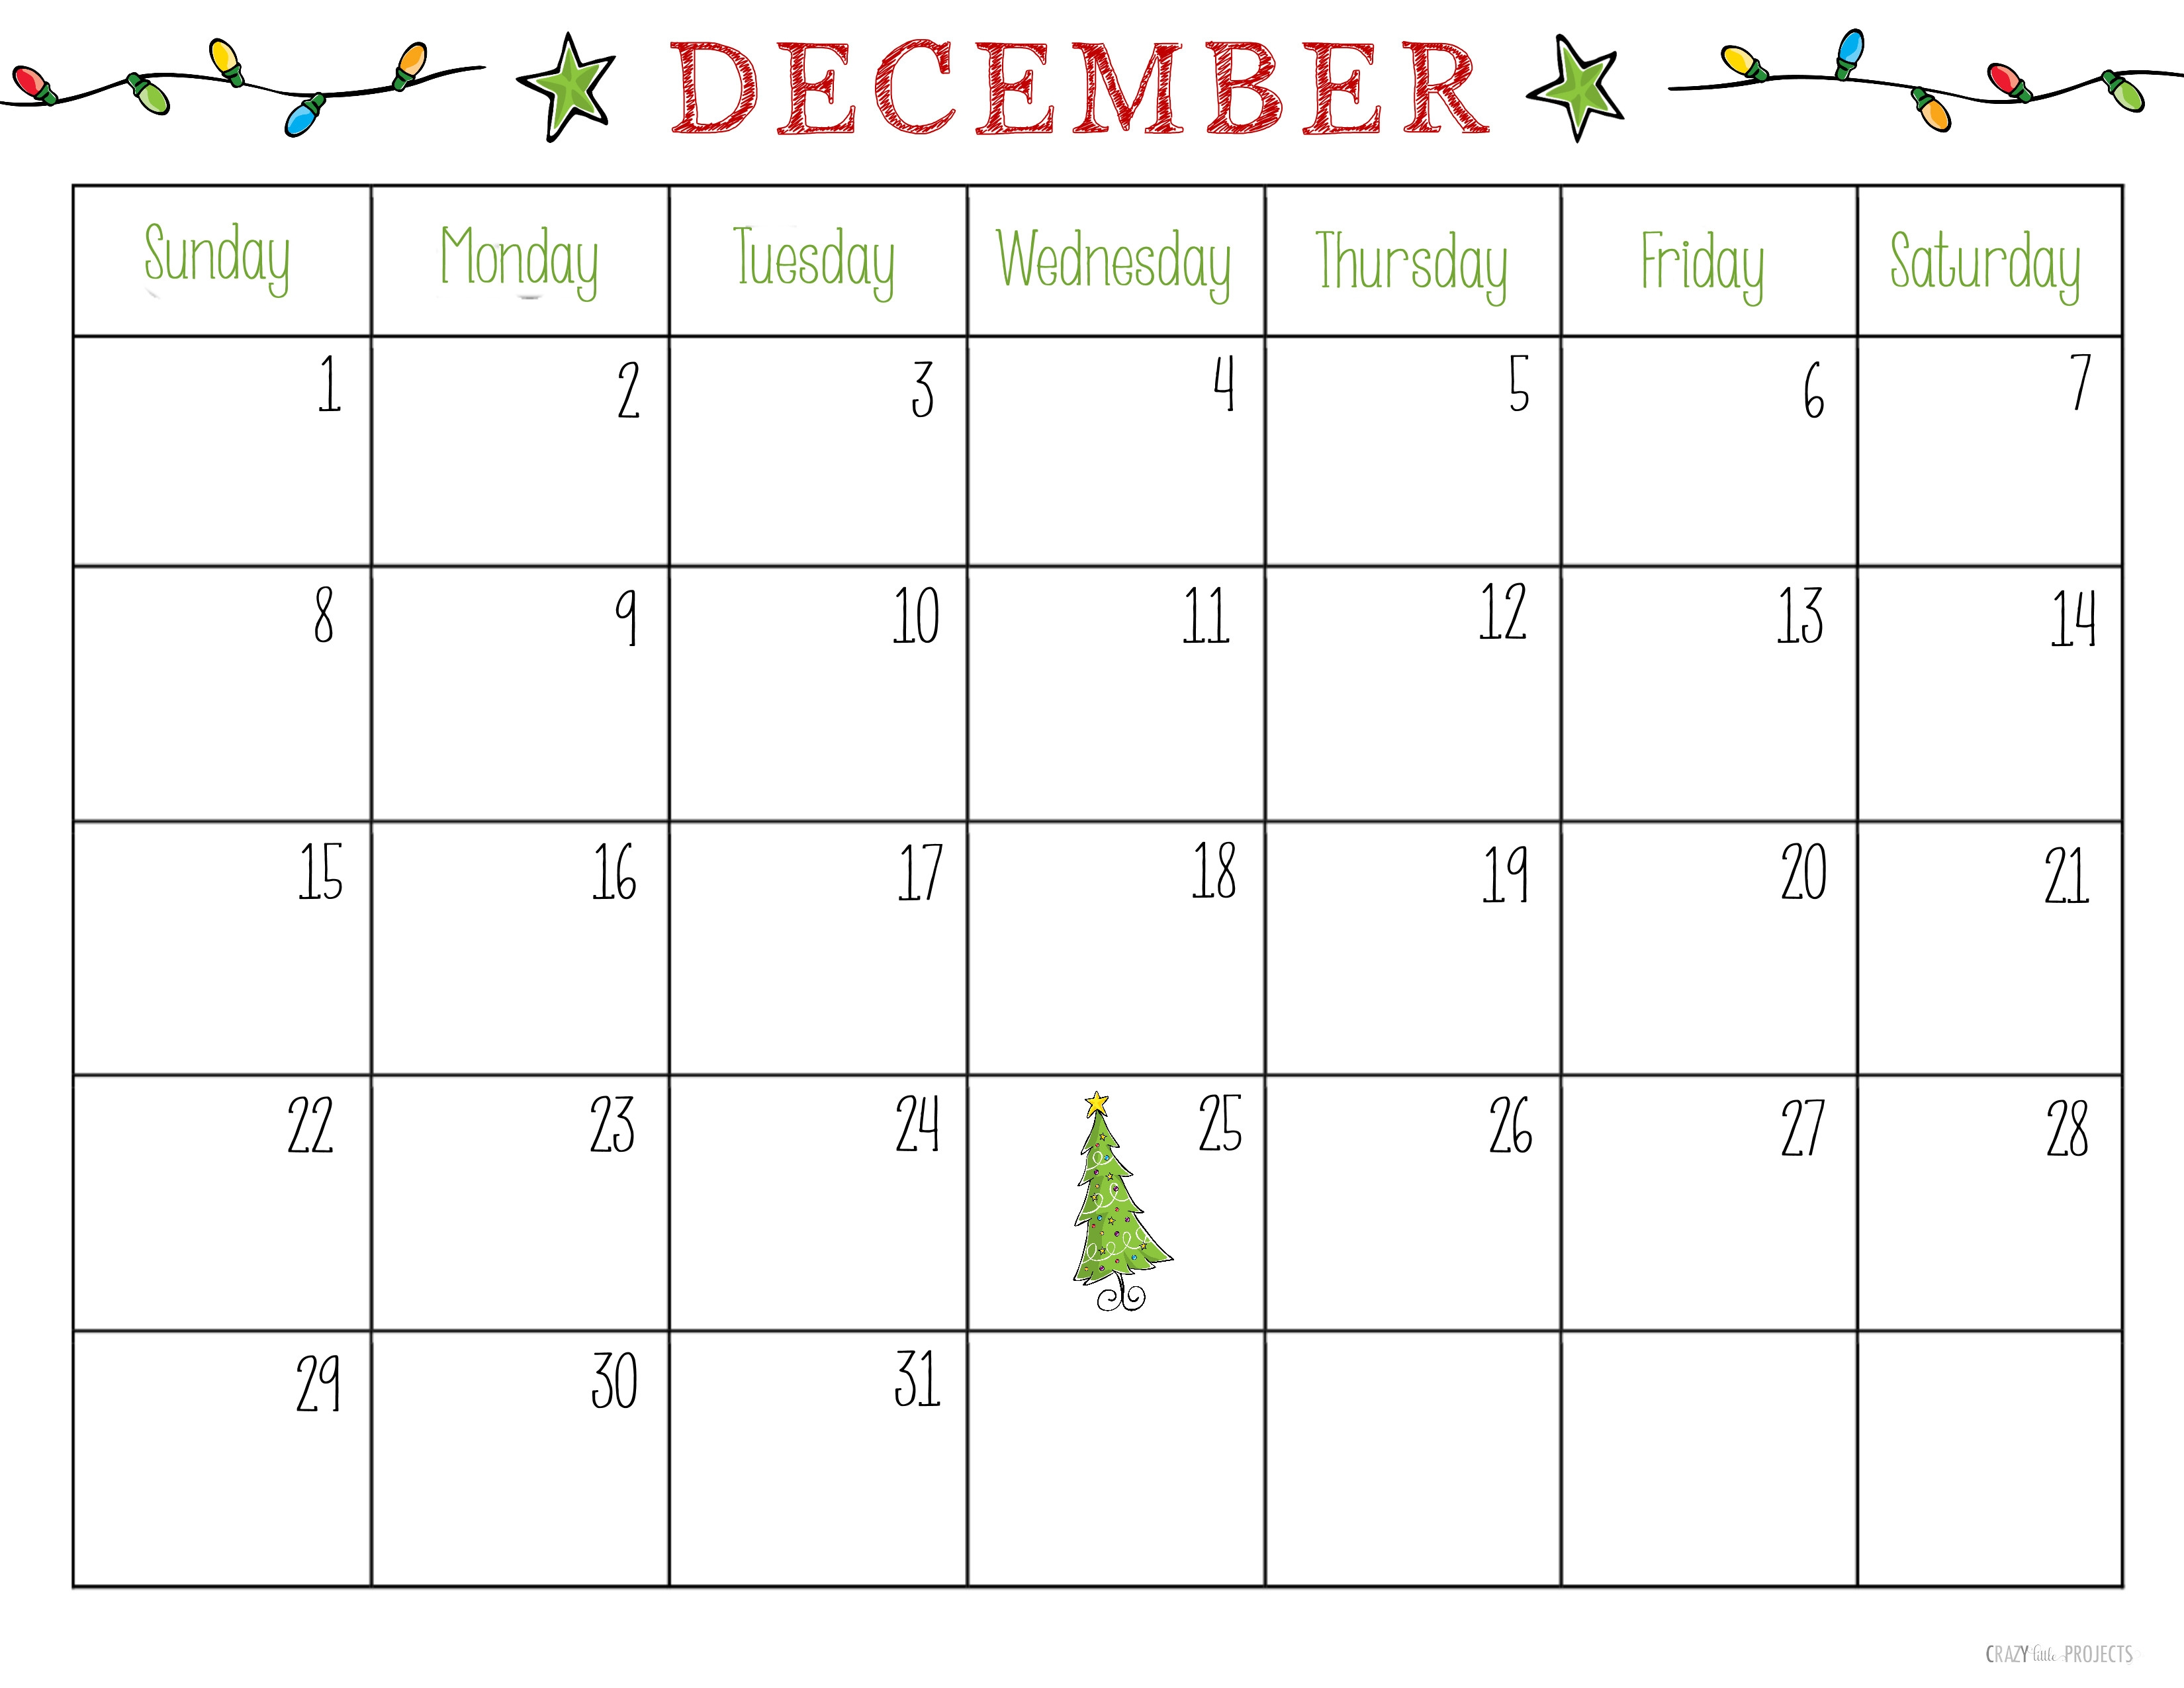 free printable christmas planner also cute december 2015 calendar::December 2018 Calendar Cute